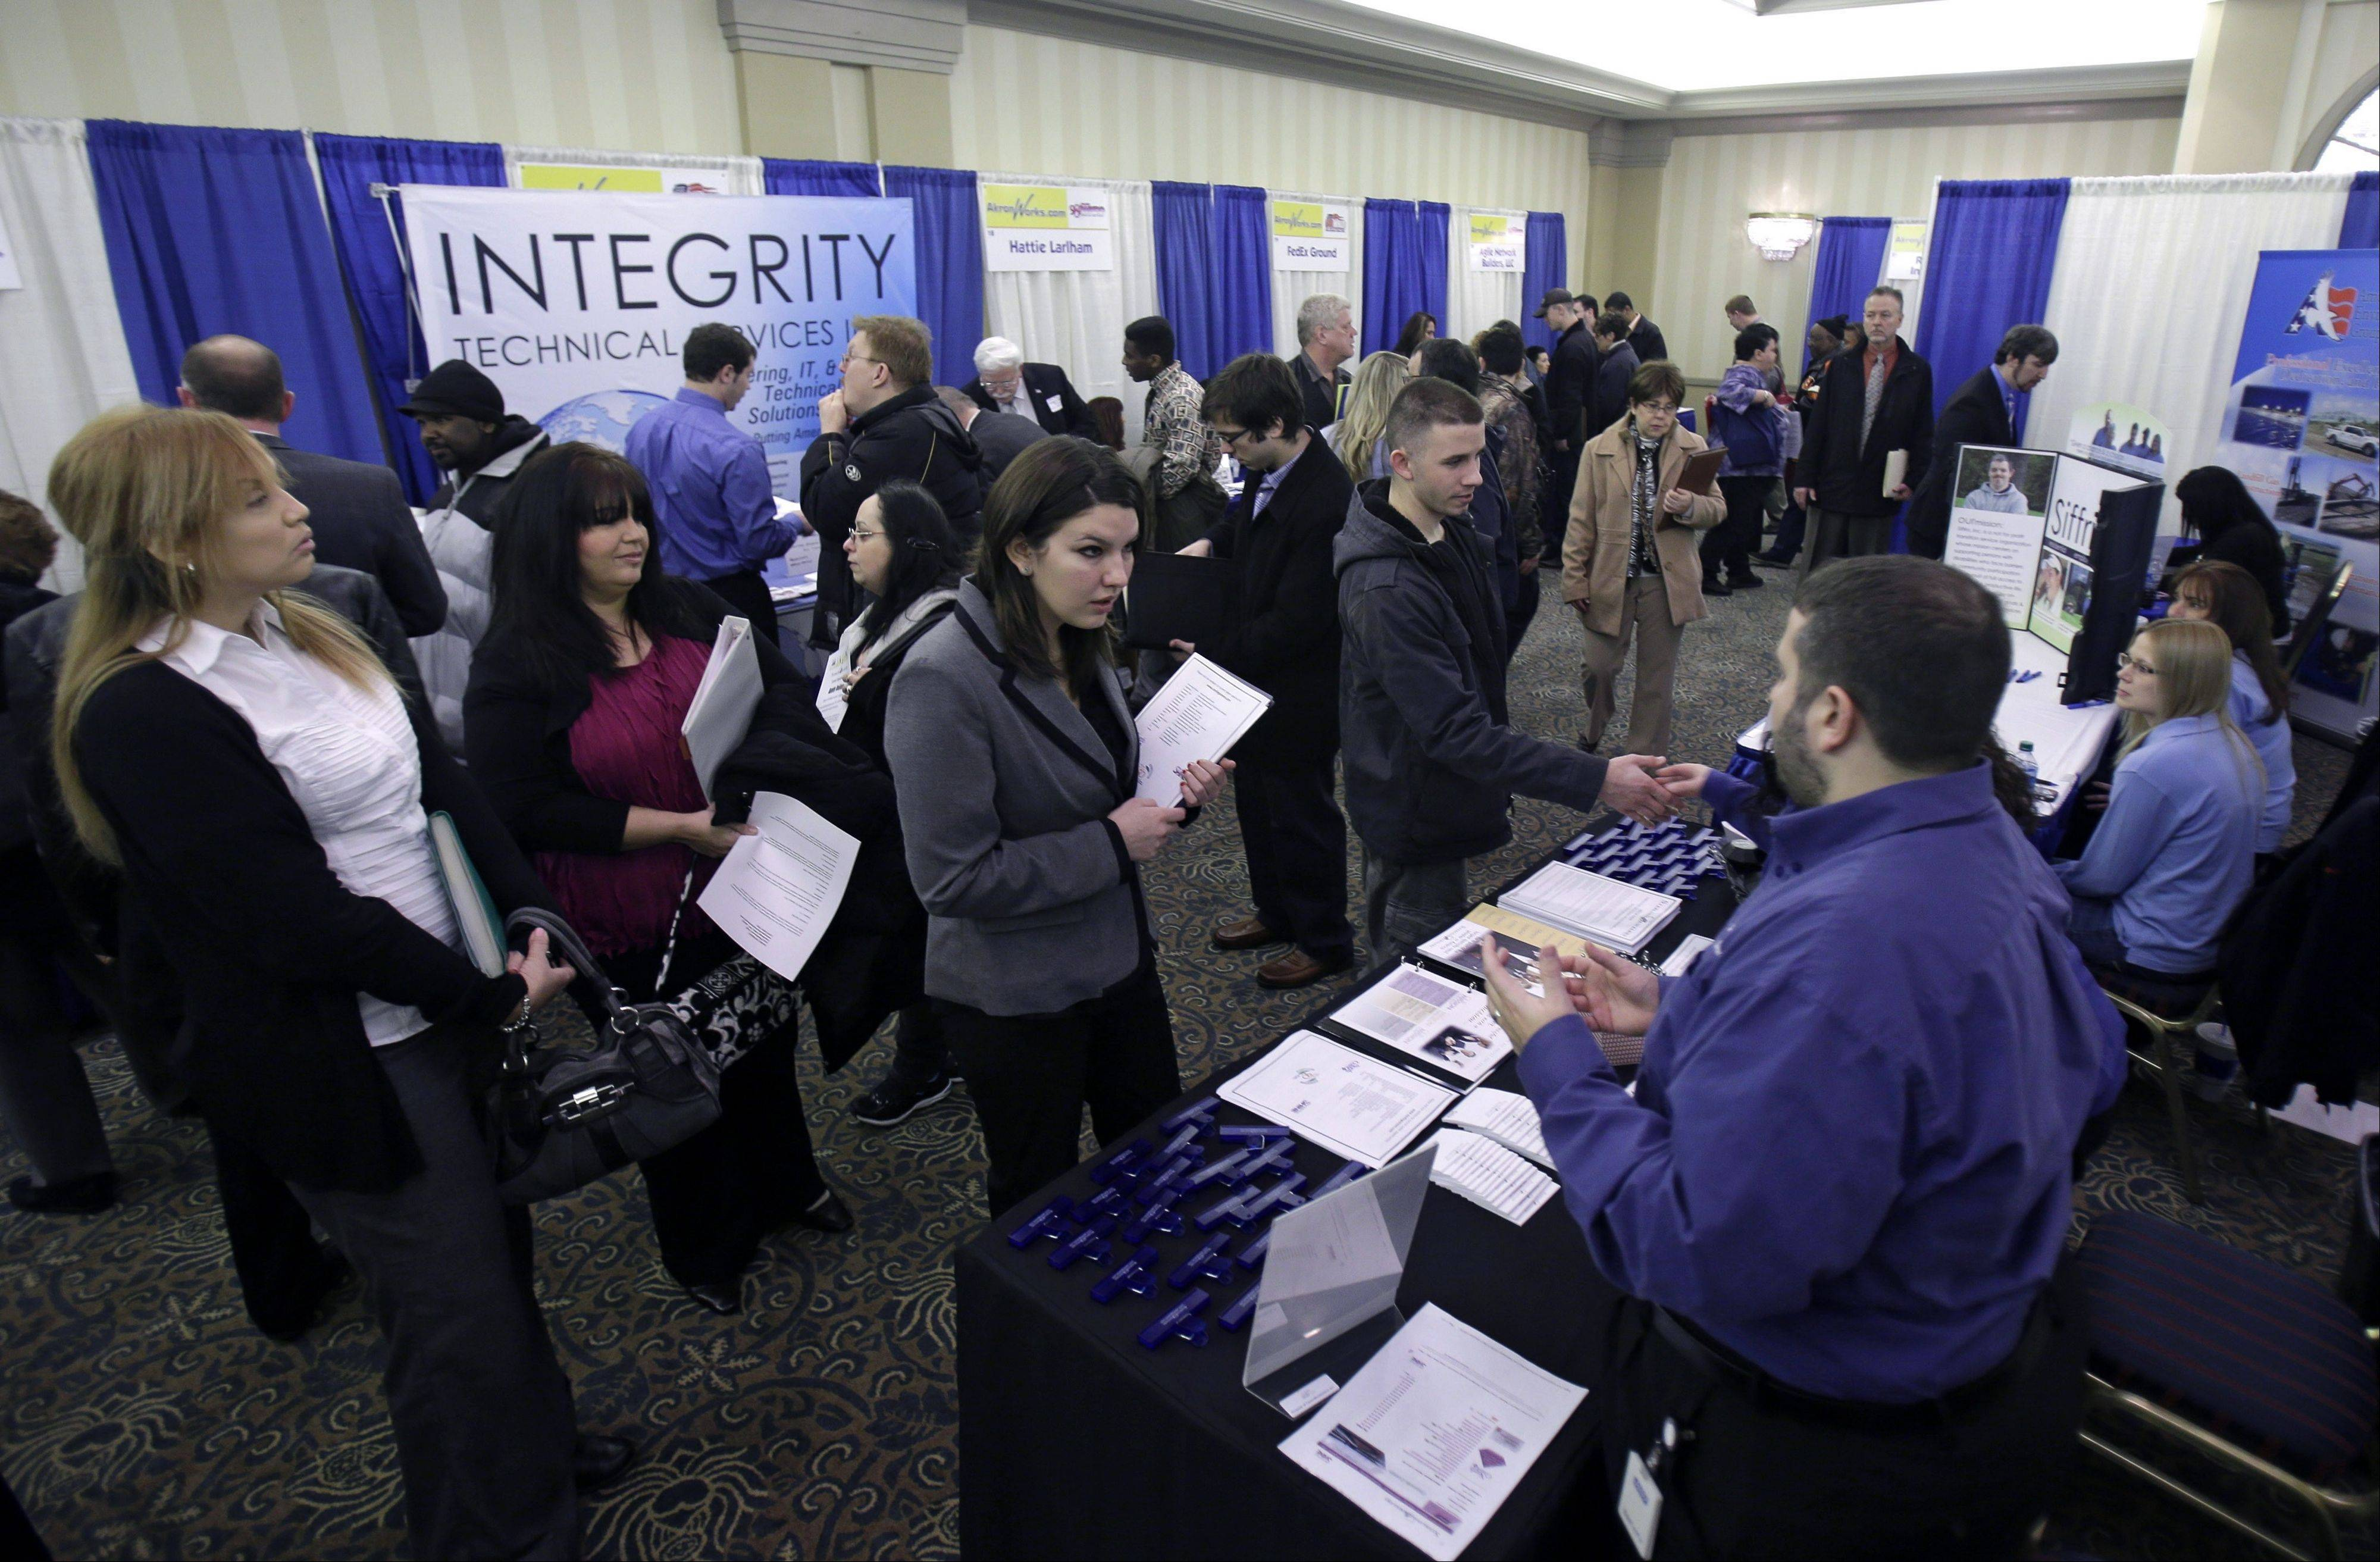 Job seekers meet with employers at a job fair in Sunrise, Fla.